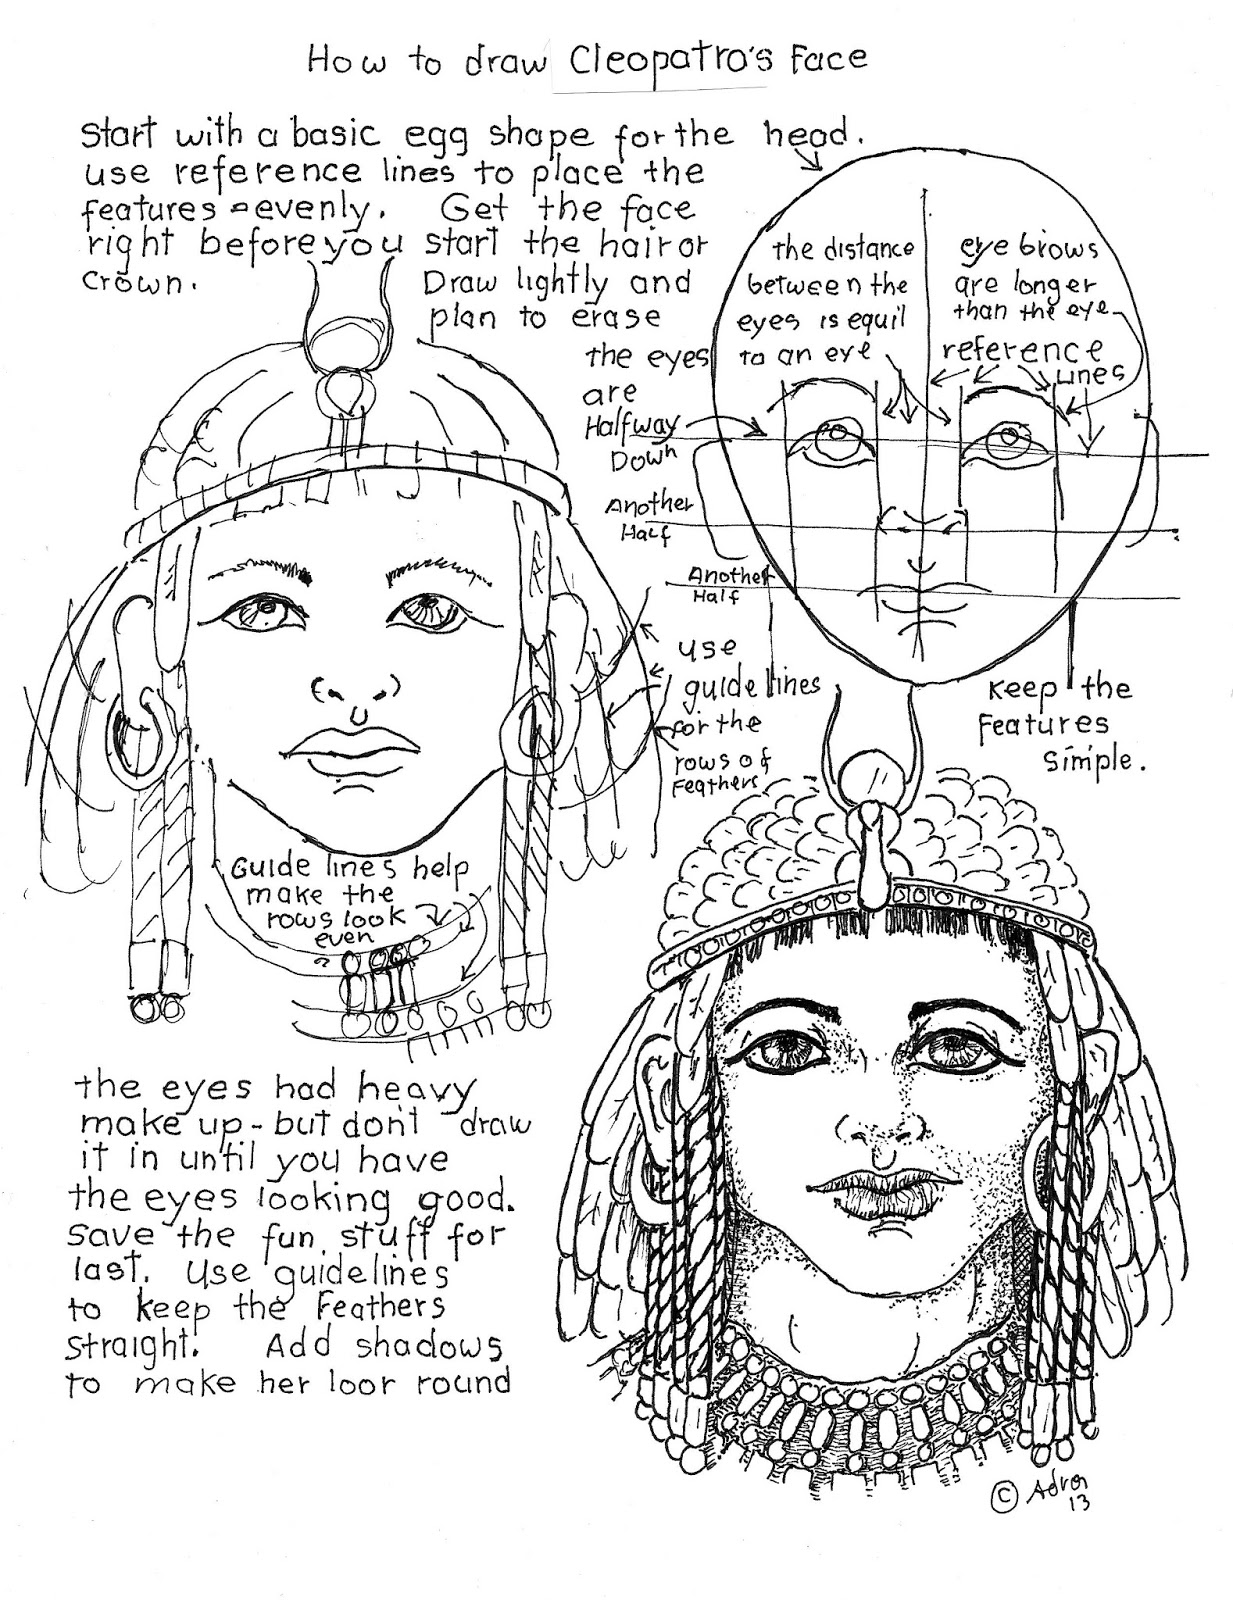 How To Draw The Face Of Cleopatra Worksheet